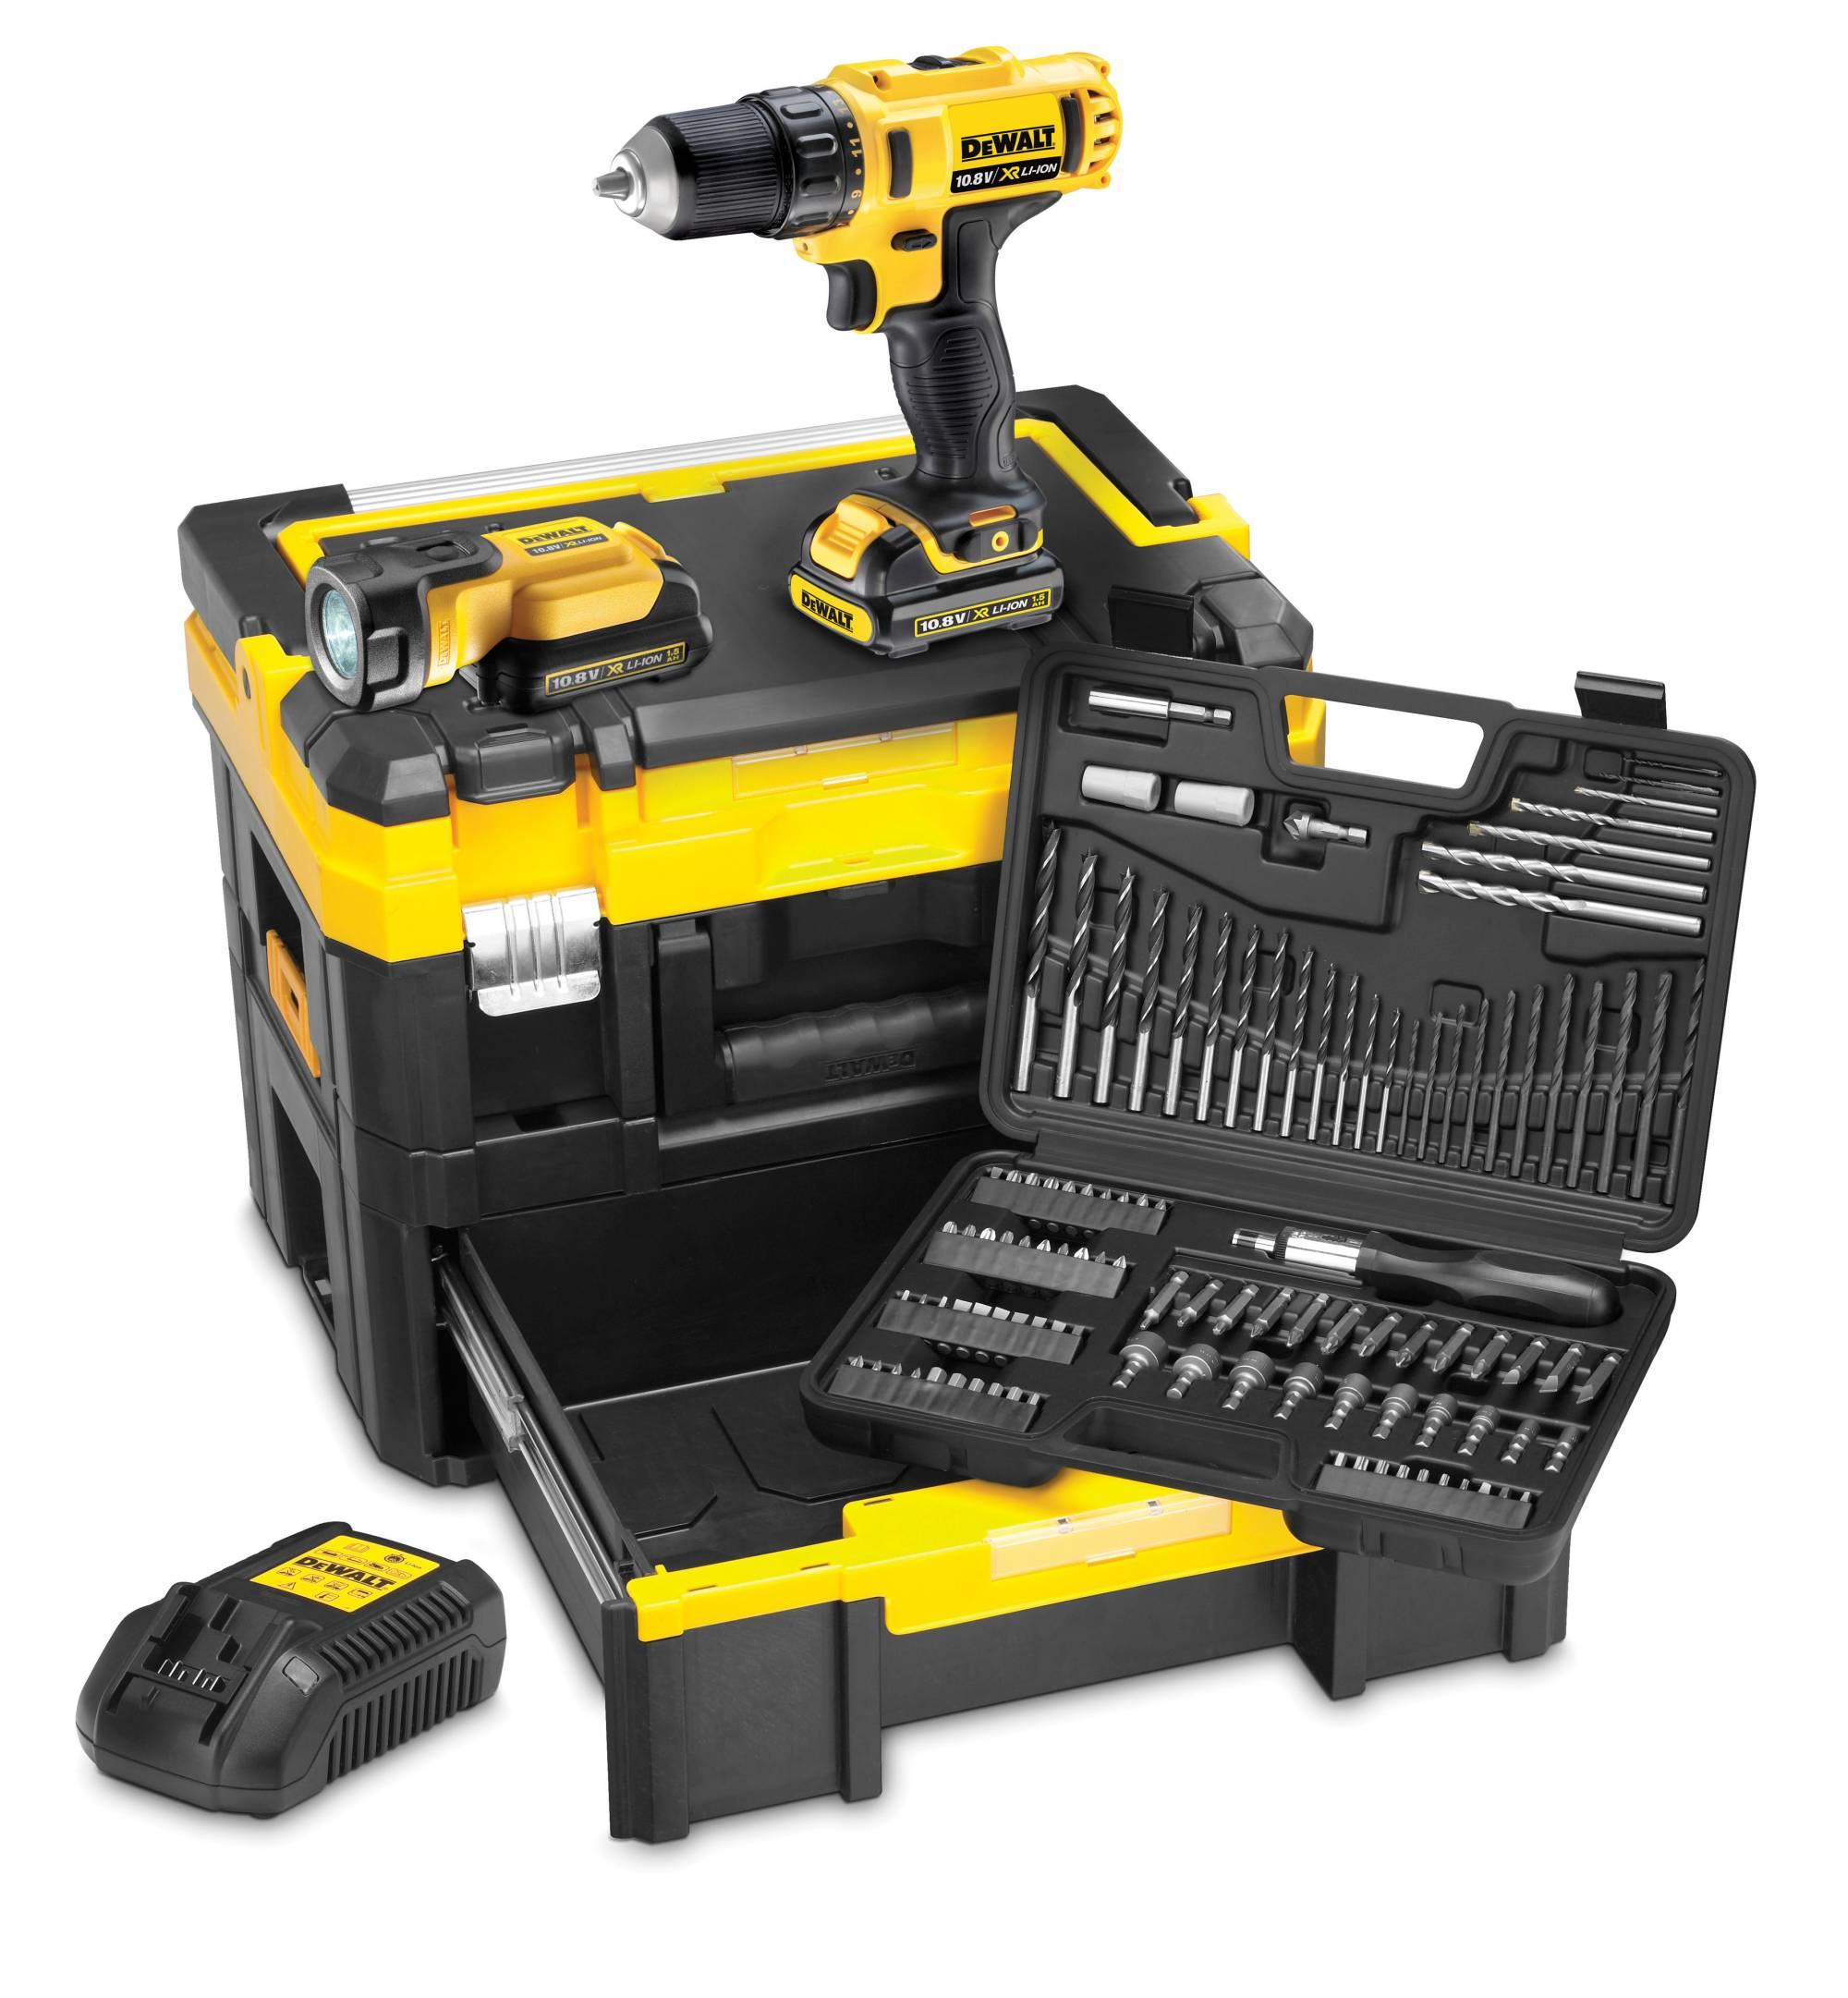 coffret dewalt tbox sans fil 109 accessoires perceuse. Black Bedroom Furniture Sets. Home Design Ideas